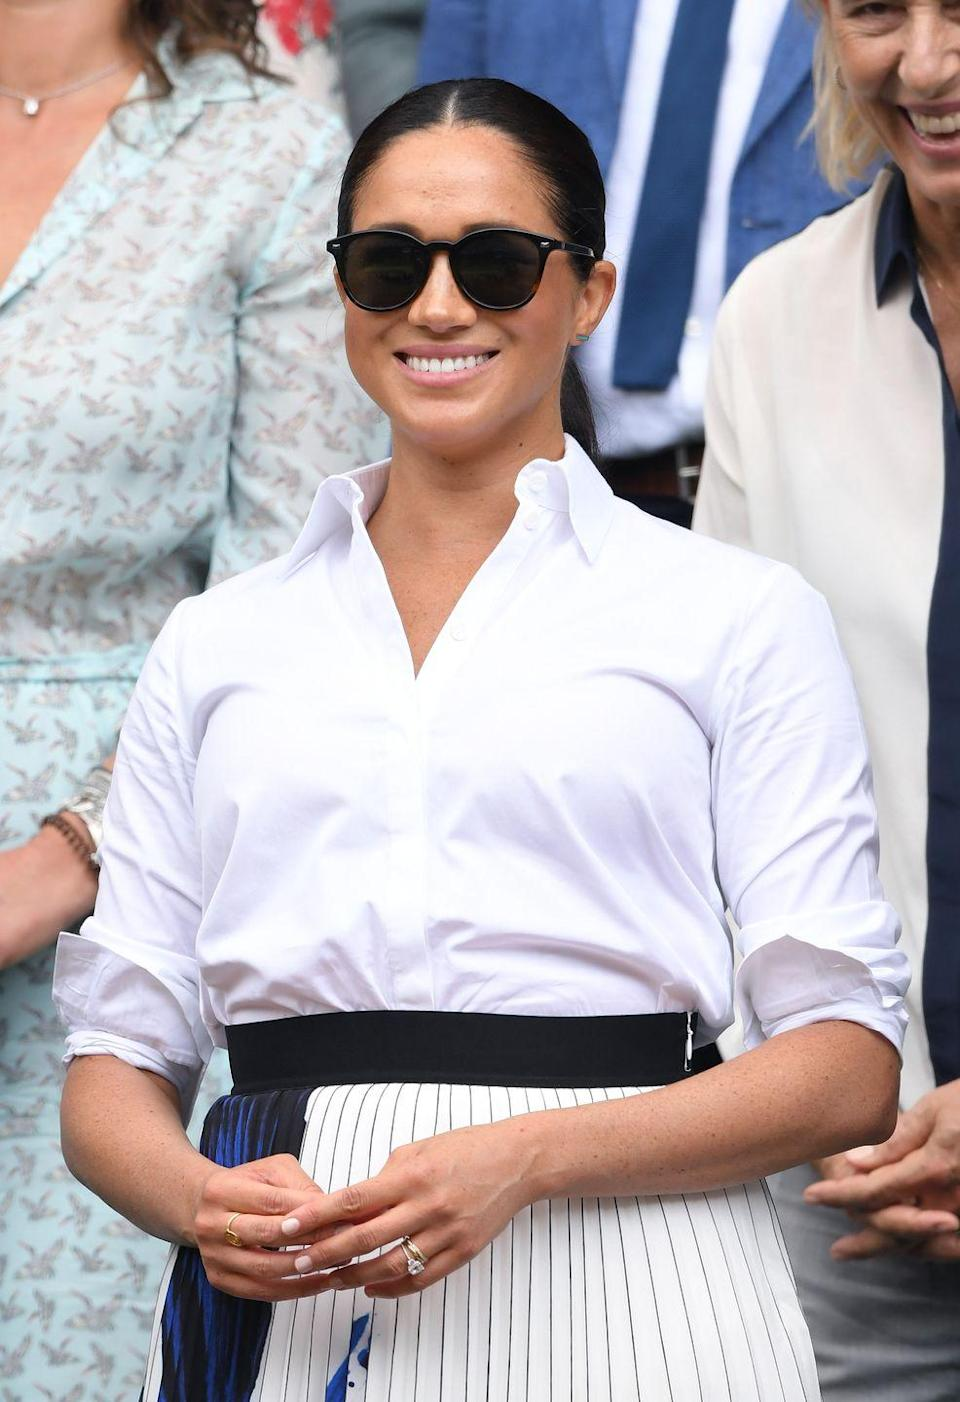 """<p>We earn a commission for products purchased through some links in this article.</p><p>The Duchess of Sussex joined Kate Middleton to watch Serena Williams and Simona Halep from the Royal Box. She wore a white shirt and plisse midi skirt from Hugo Boss for the outing, accessorised with the Bandwagon sunglasses from Le Specs.</p><p><a class=""""link rapid-noclick-resp"""" href=""""https://go.redirectingat.com?id=127X1599956&url=https%3A%2F%2Fwww.hugoboss.com%2Fuk%2Fa-line-skirt-in-portuguese-plisse-fabric-with-overprinted-motif%2Fhbeu50411310_965.html&sref=https%3A%2F%2Fwww.elle.com%2Fuk%2Ffashion%2Fcelebrity-style%2Fg28258118%2Fwimbledon-best-dressed-celebrities%2F"""" rel=""""nofollow noopener"""" target=""""_blank"""" data-ylk=""""slk:Shop Now"""">Shop Now</a> Hugo Boss A-line skirt in Portuguese plissé fabric</p>"""